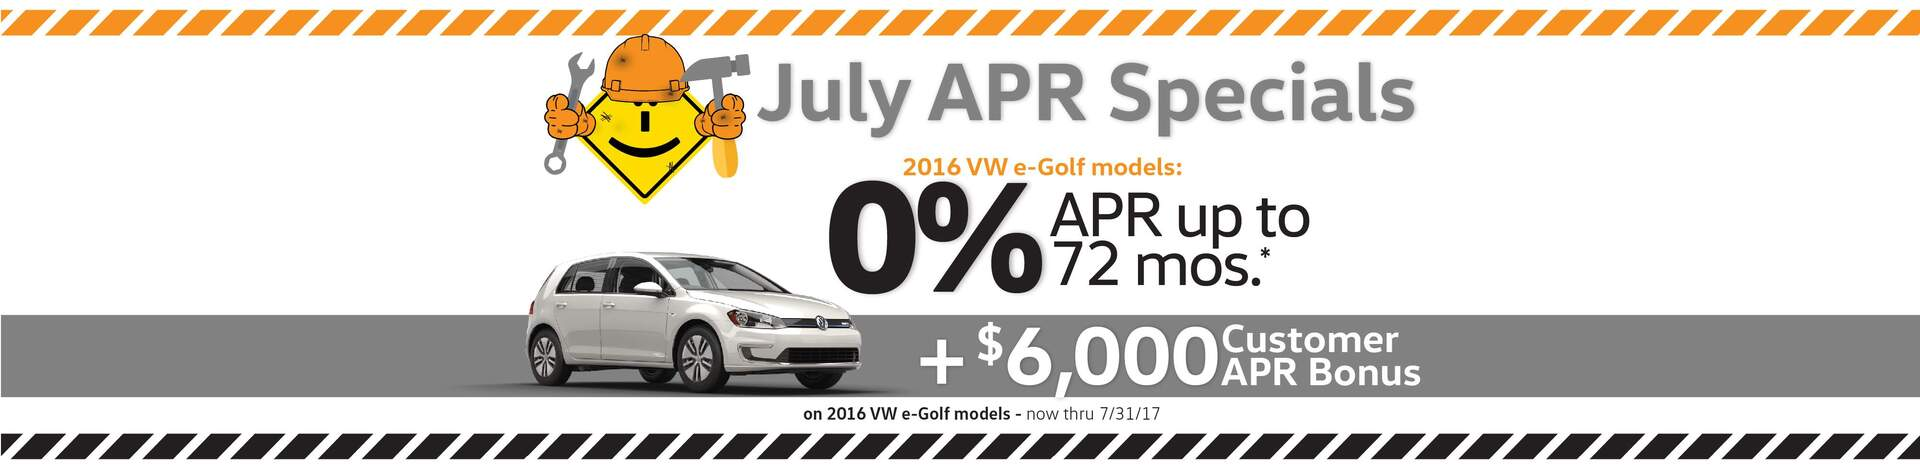 Capistrano VW July 0% APR for 72 months on select new 2017 VW models